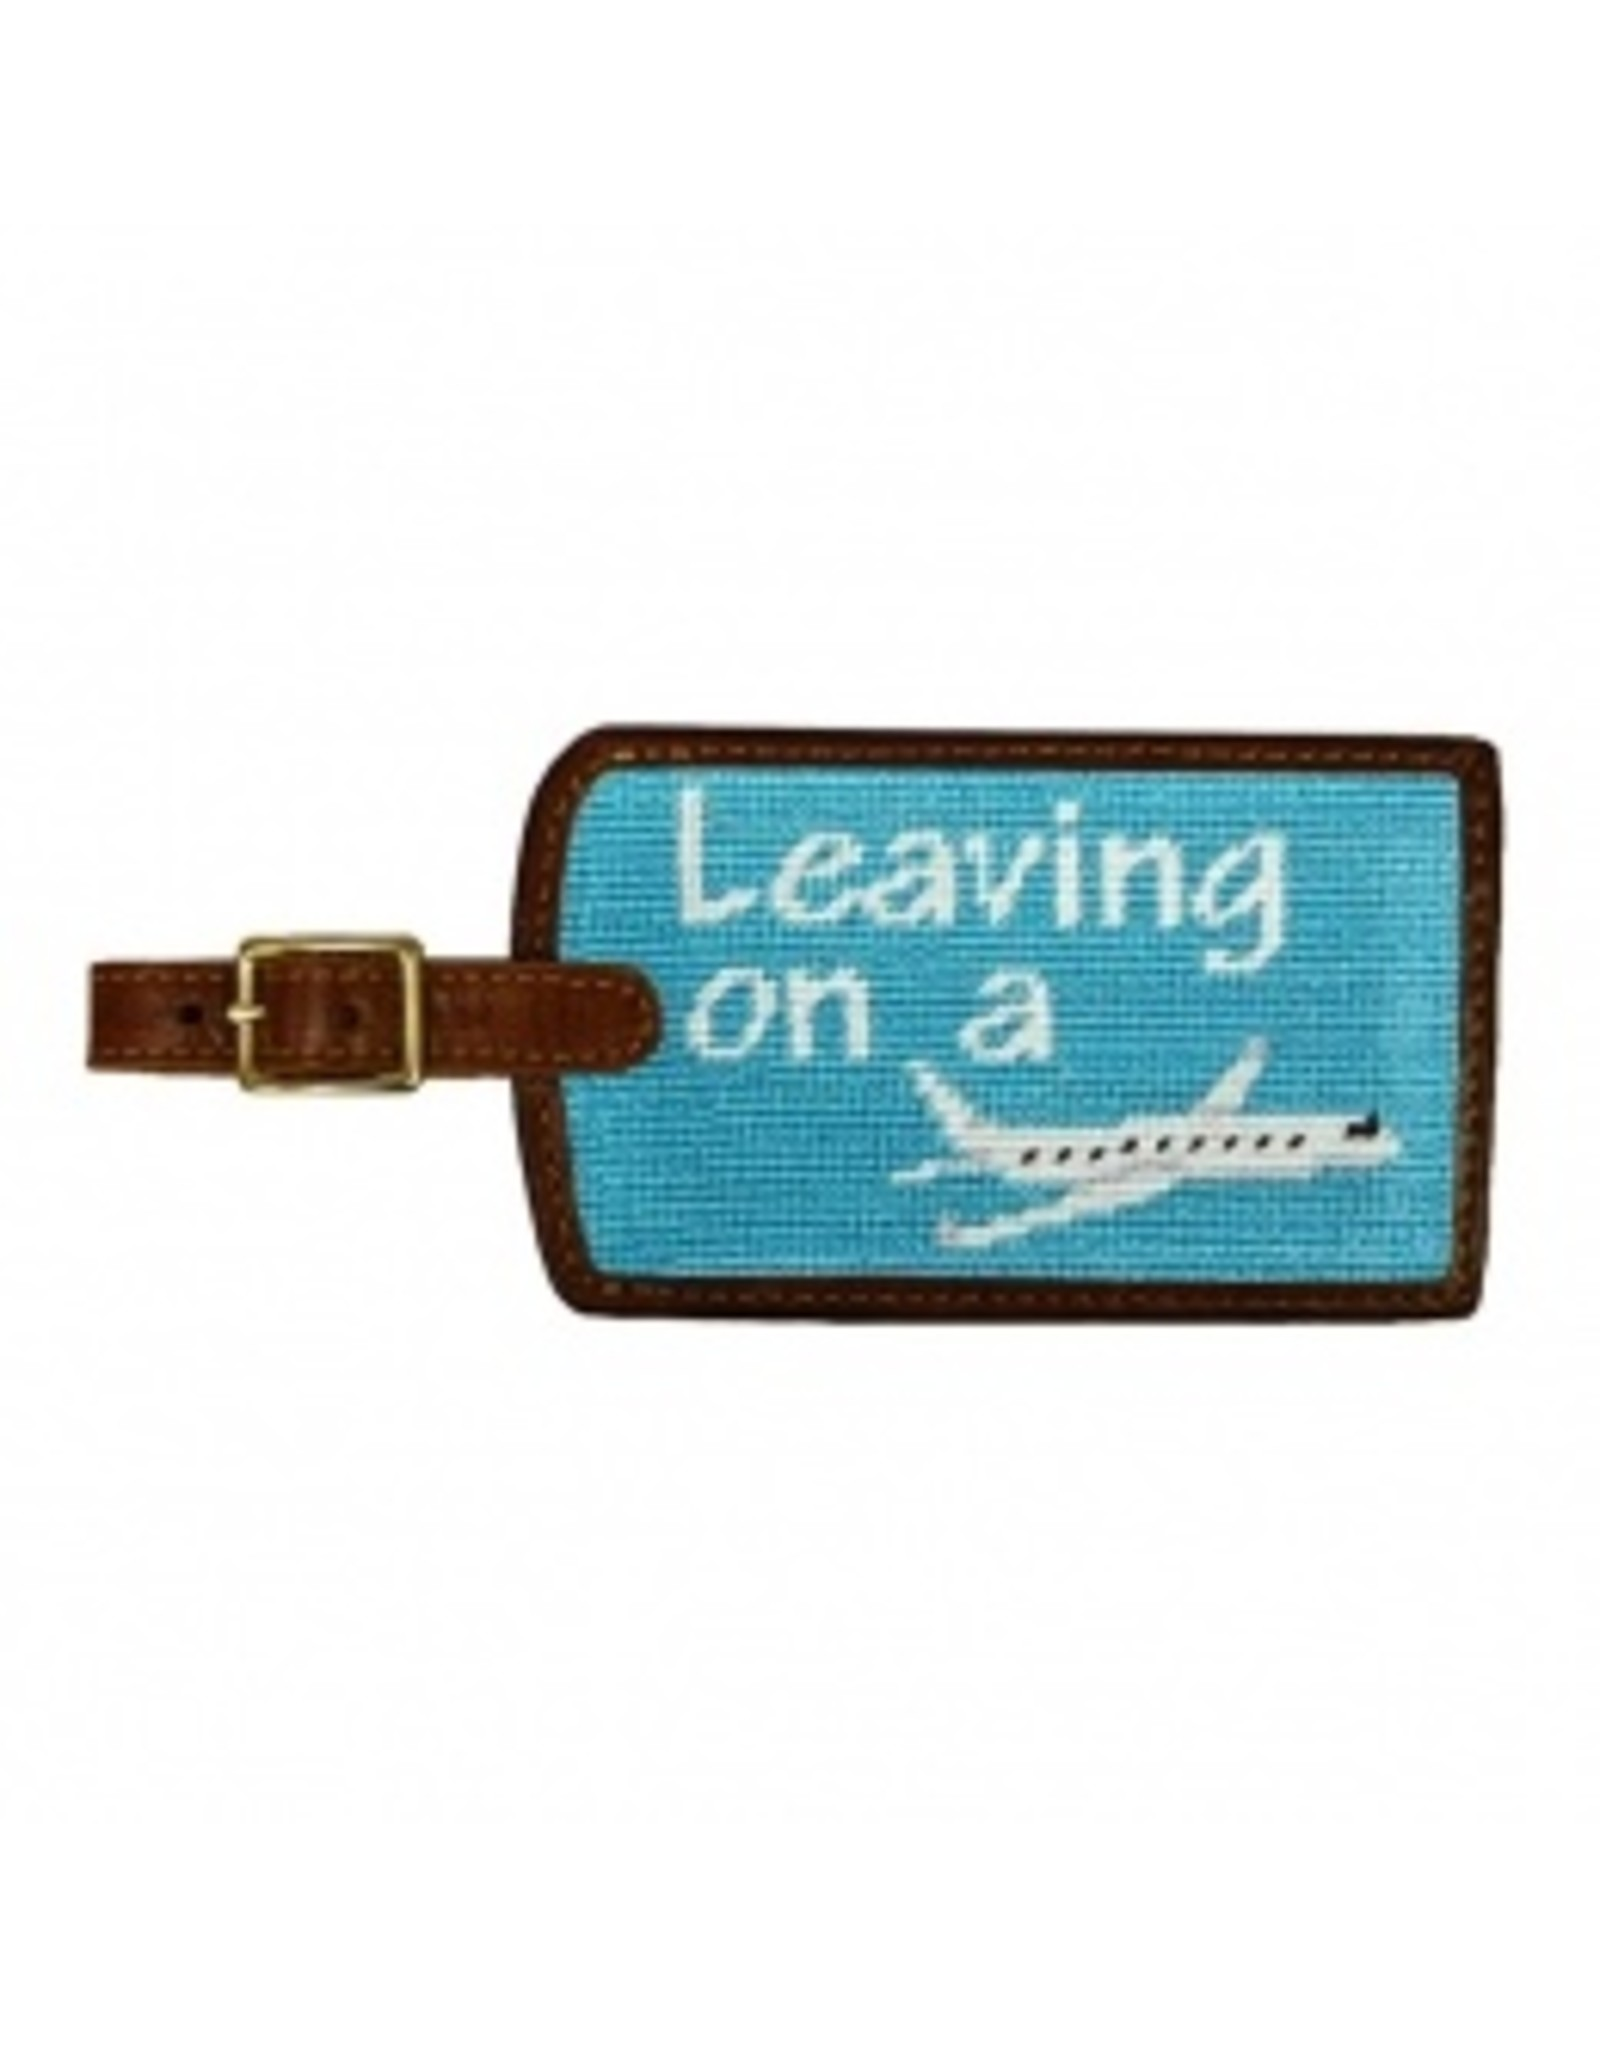 Smathers & Branson S&B Luggage Tag, Leaving On a Plane, teal